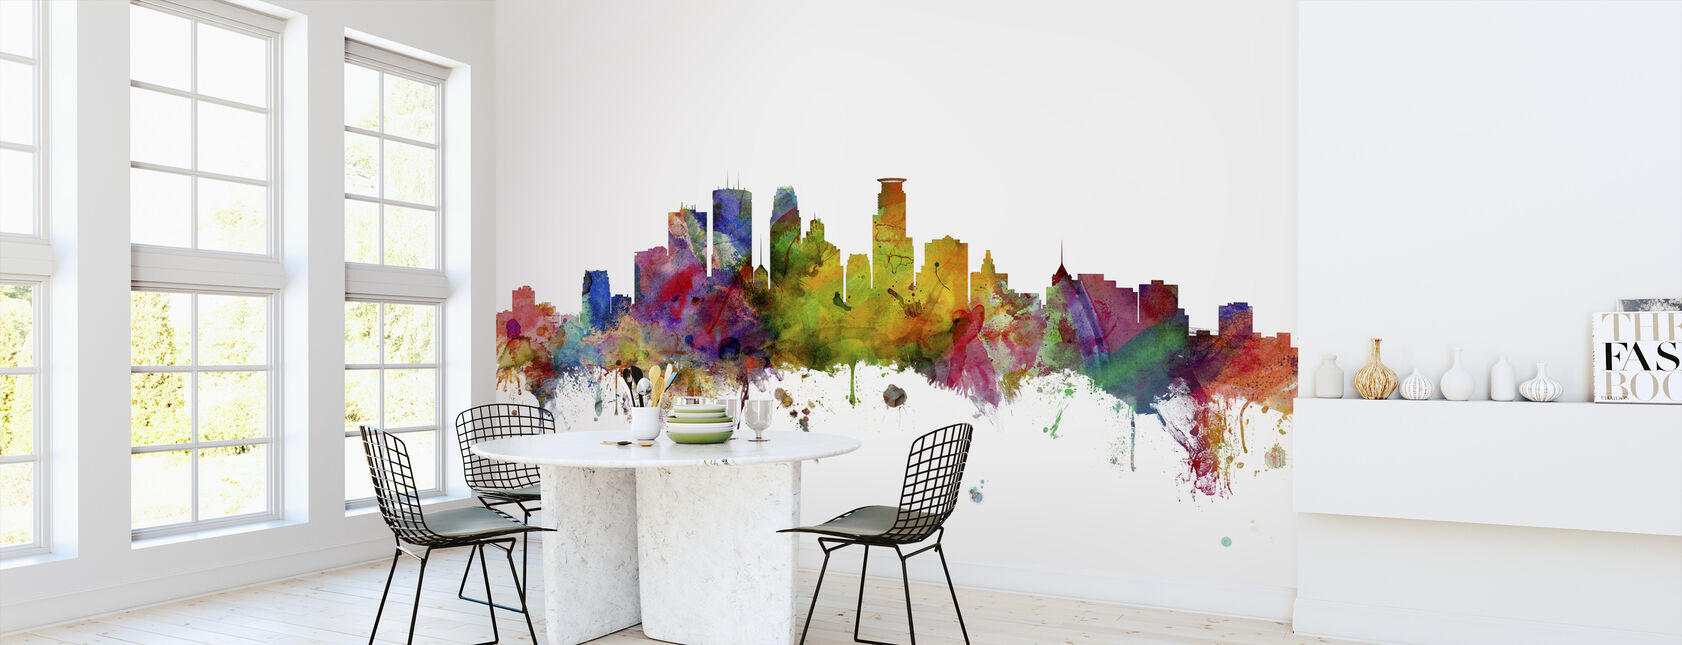 Minneapolis Minnesota Skyline - Wallpaper - Kitchen